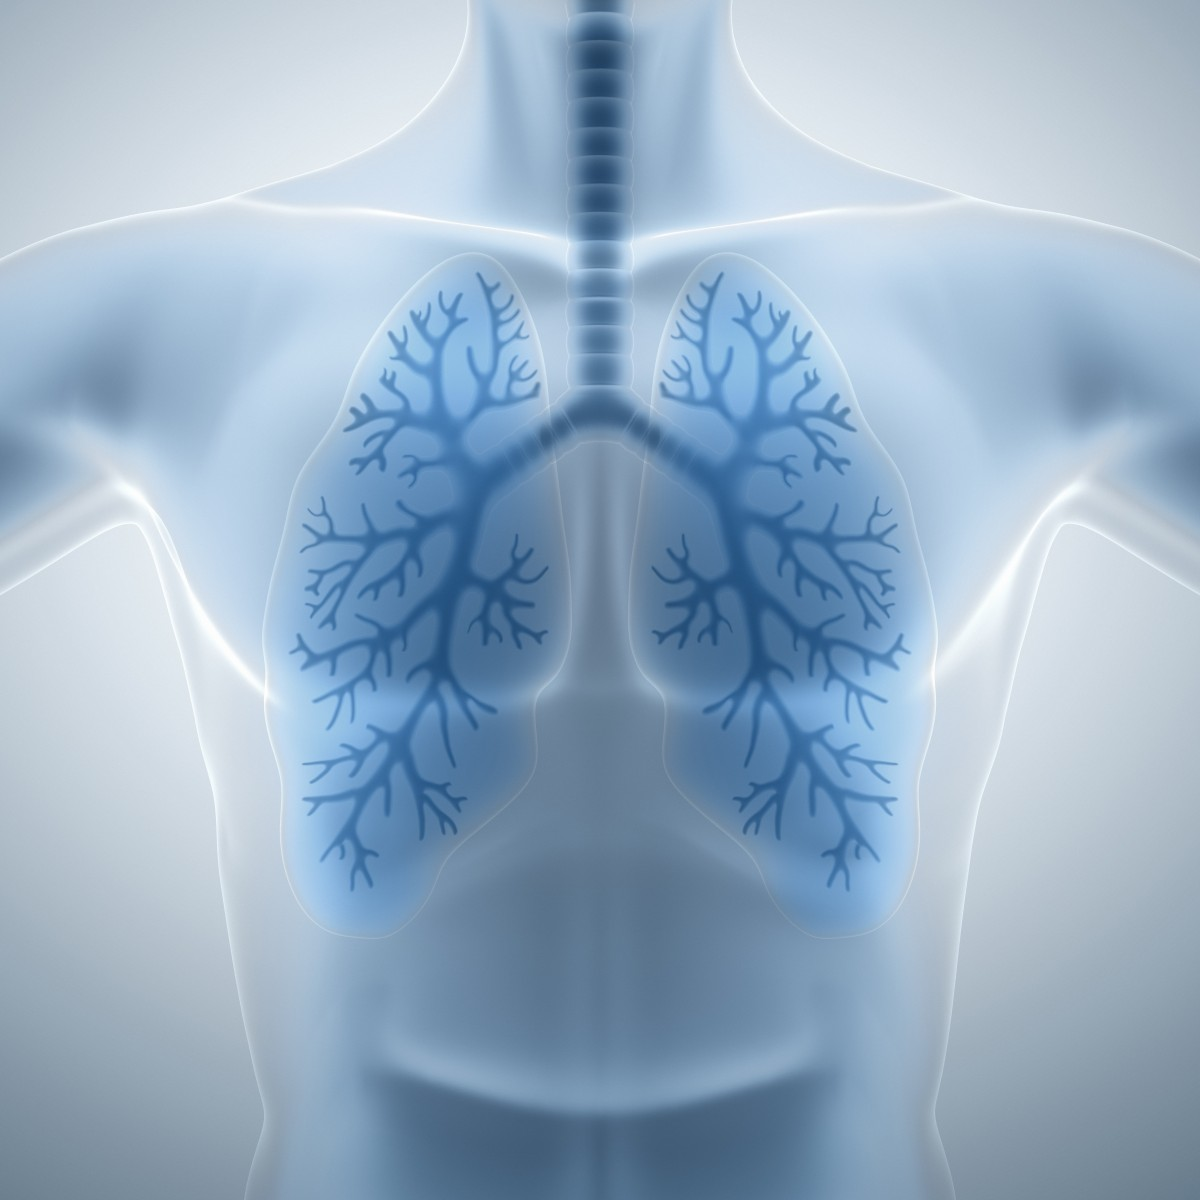 Lung Cancer Survival Much Lower Than Other Invasive Cancers